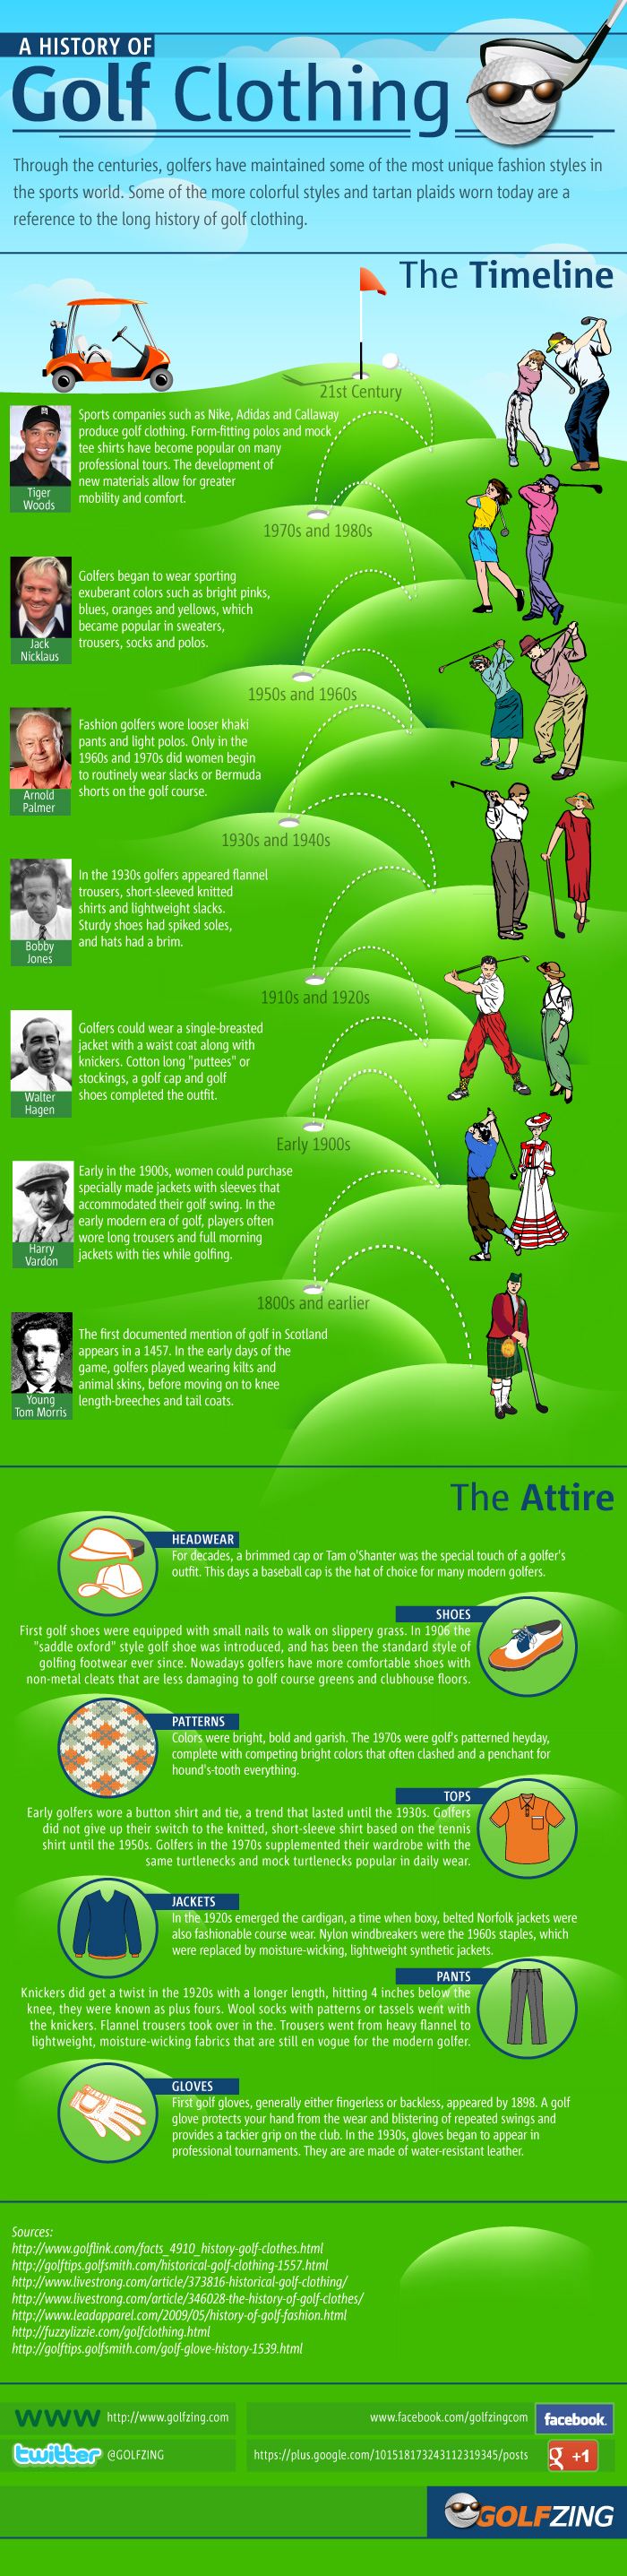 The history of Golf clothing